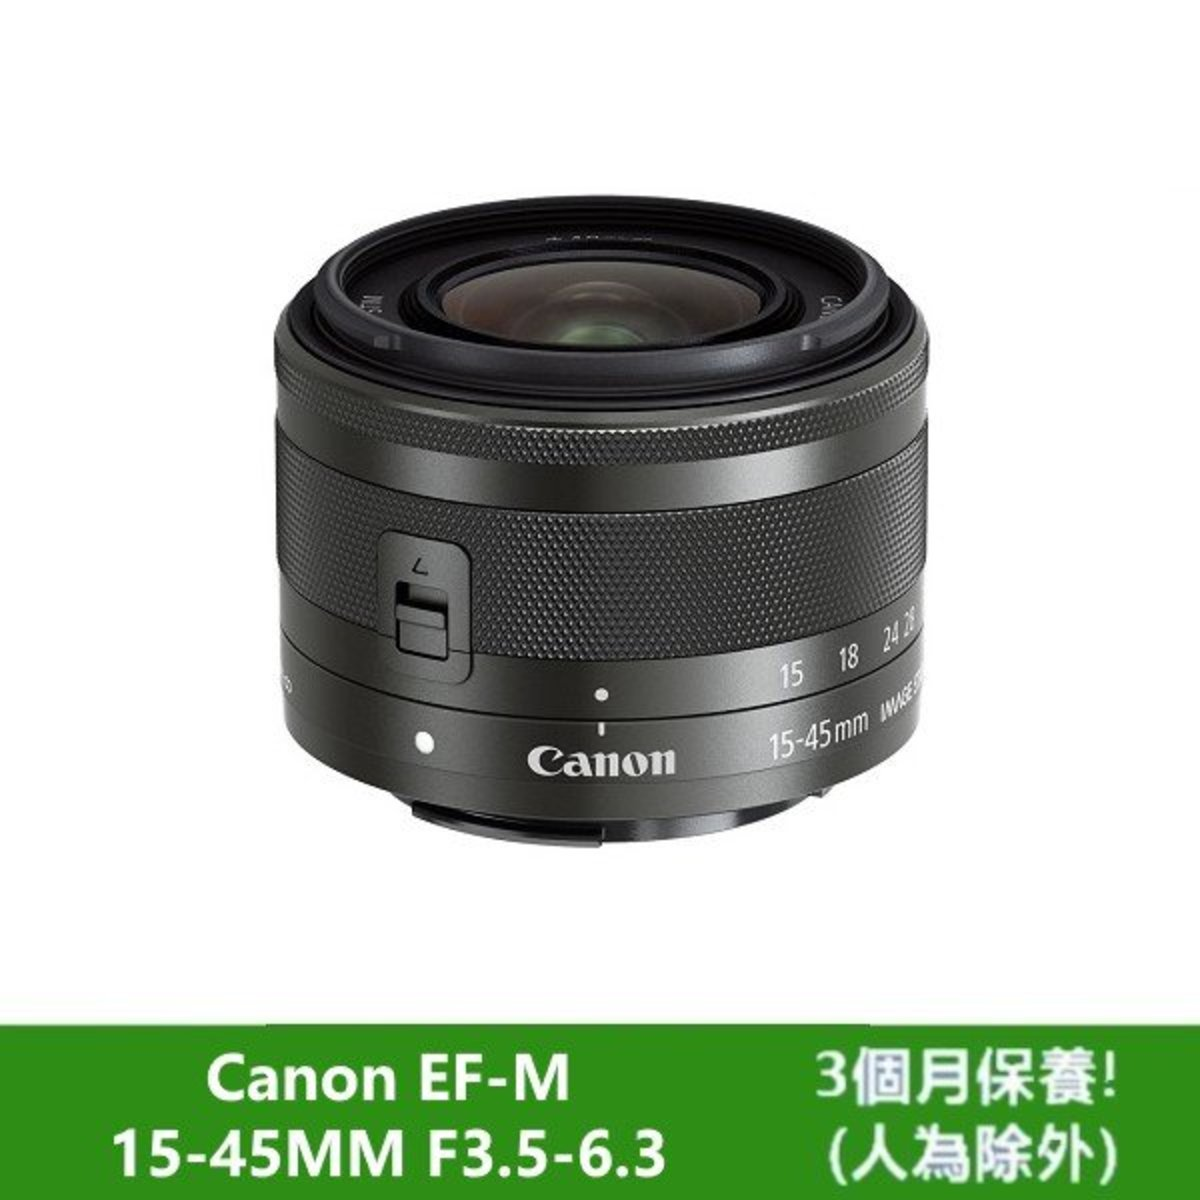 Canon EF-M15-45mm f/3.5-6.3 IS STM lens Black (Kit Lens No Box, White Box) Parallel Import